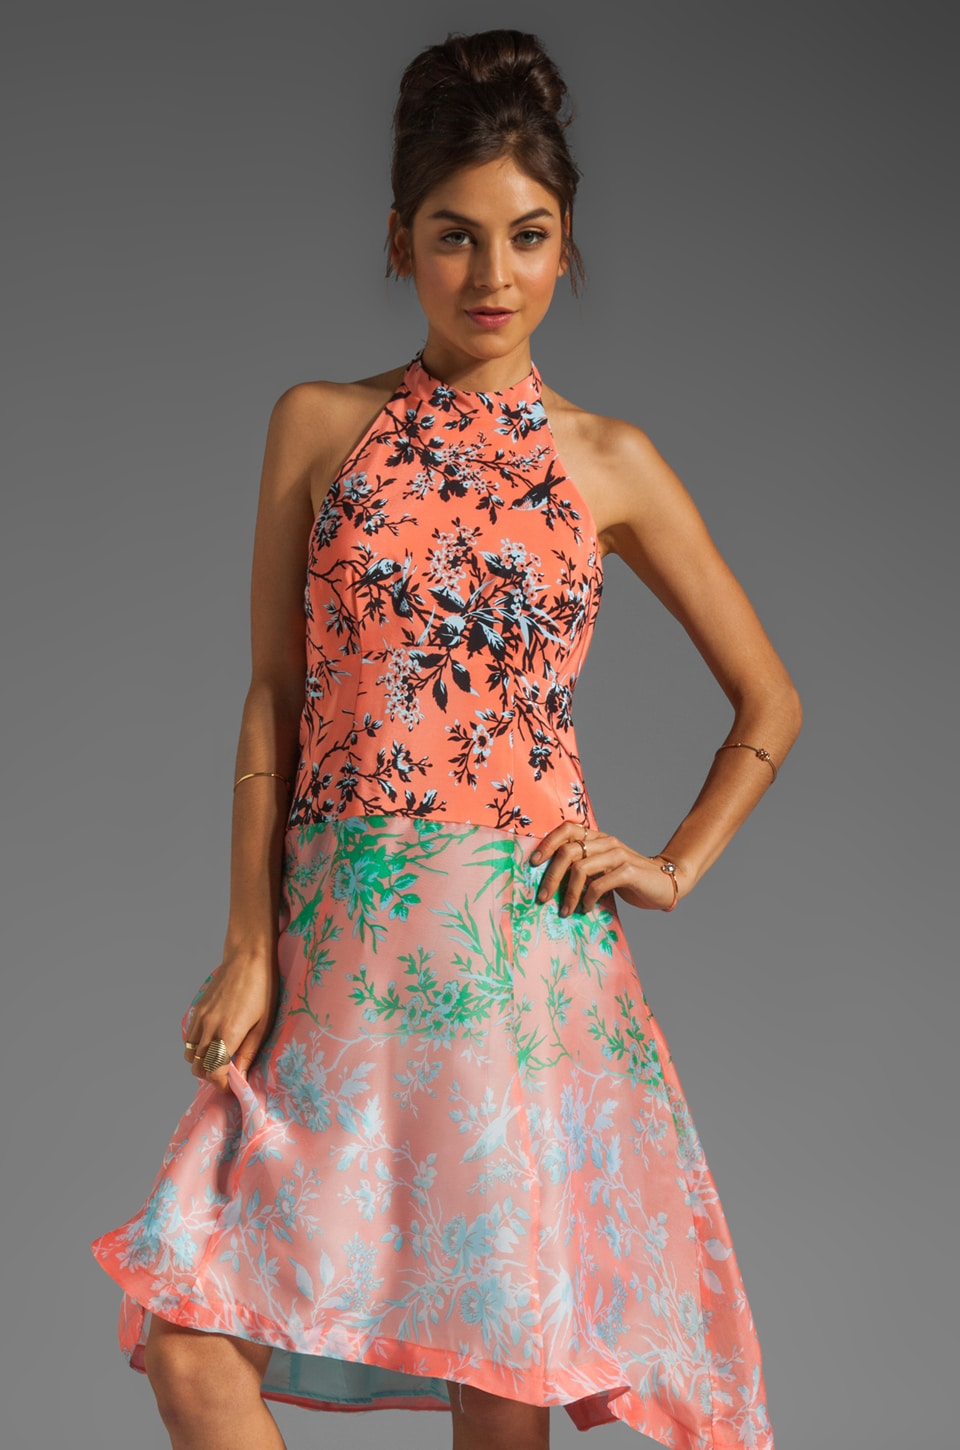 Nanette Lepore RUNWAY Sound Art Dress in Coral